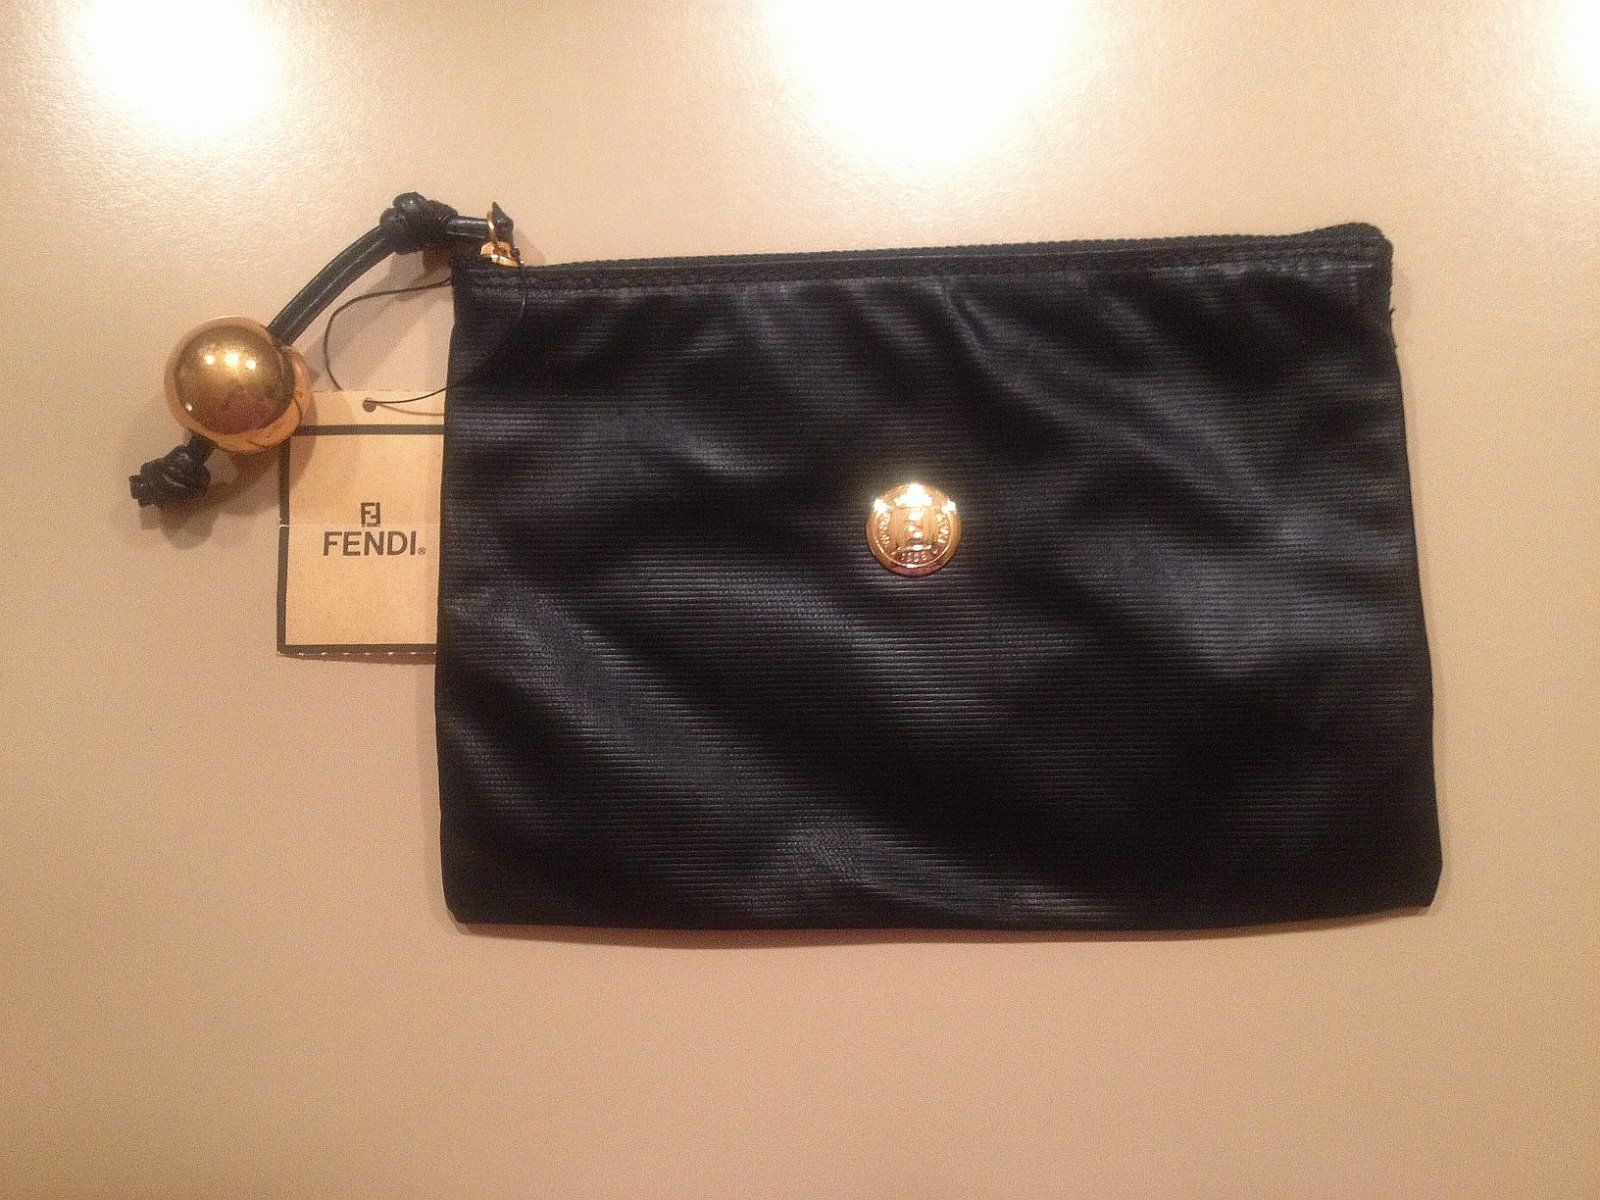 Fendi Vintage Black Soft Pequin Cosmetic Makeup Bag eBay